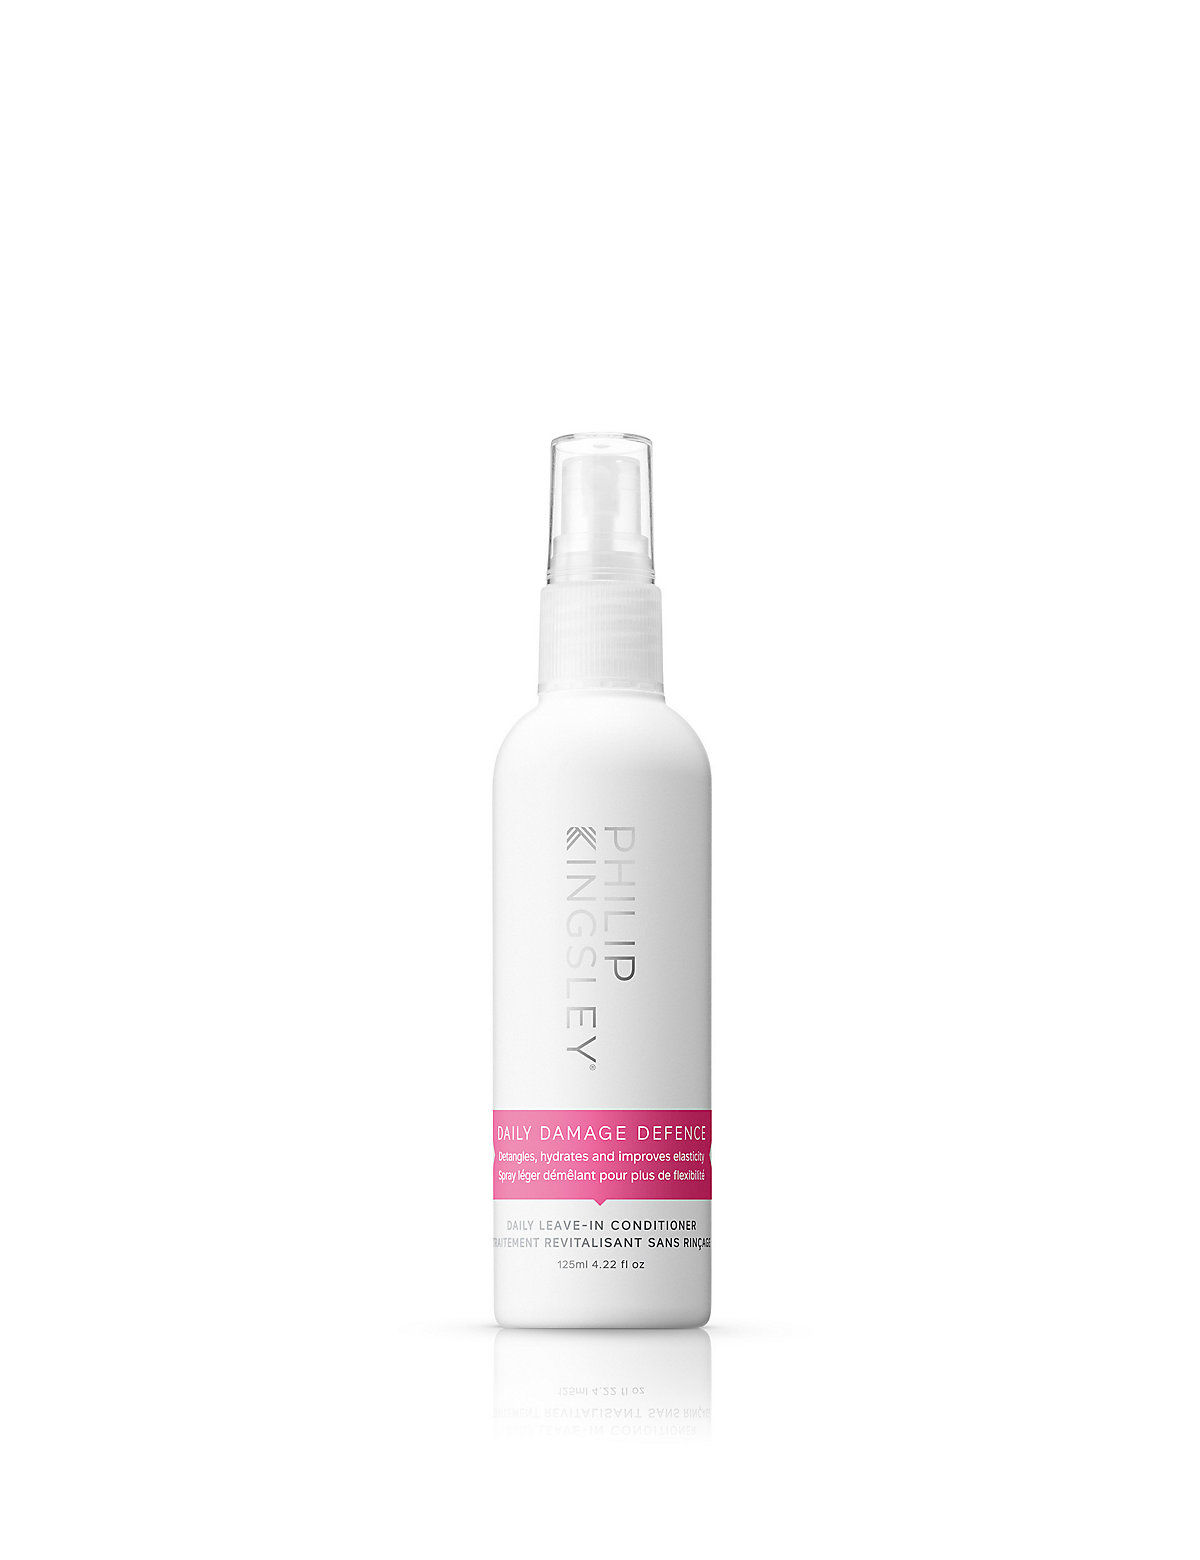 Philip Kingsley Daily Damage Defence 125ml.